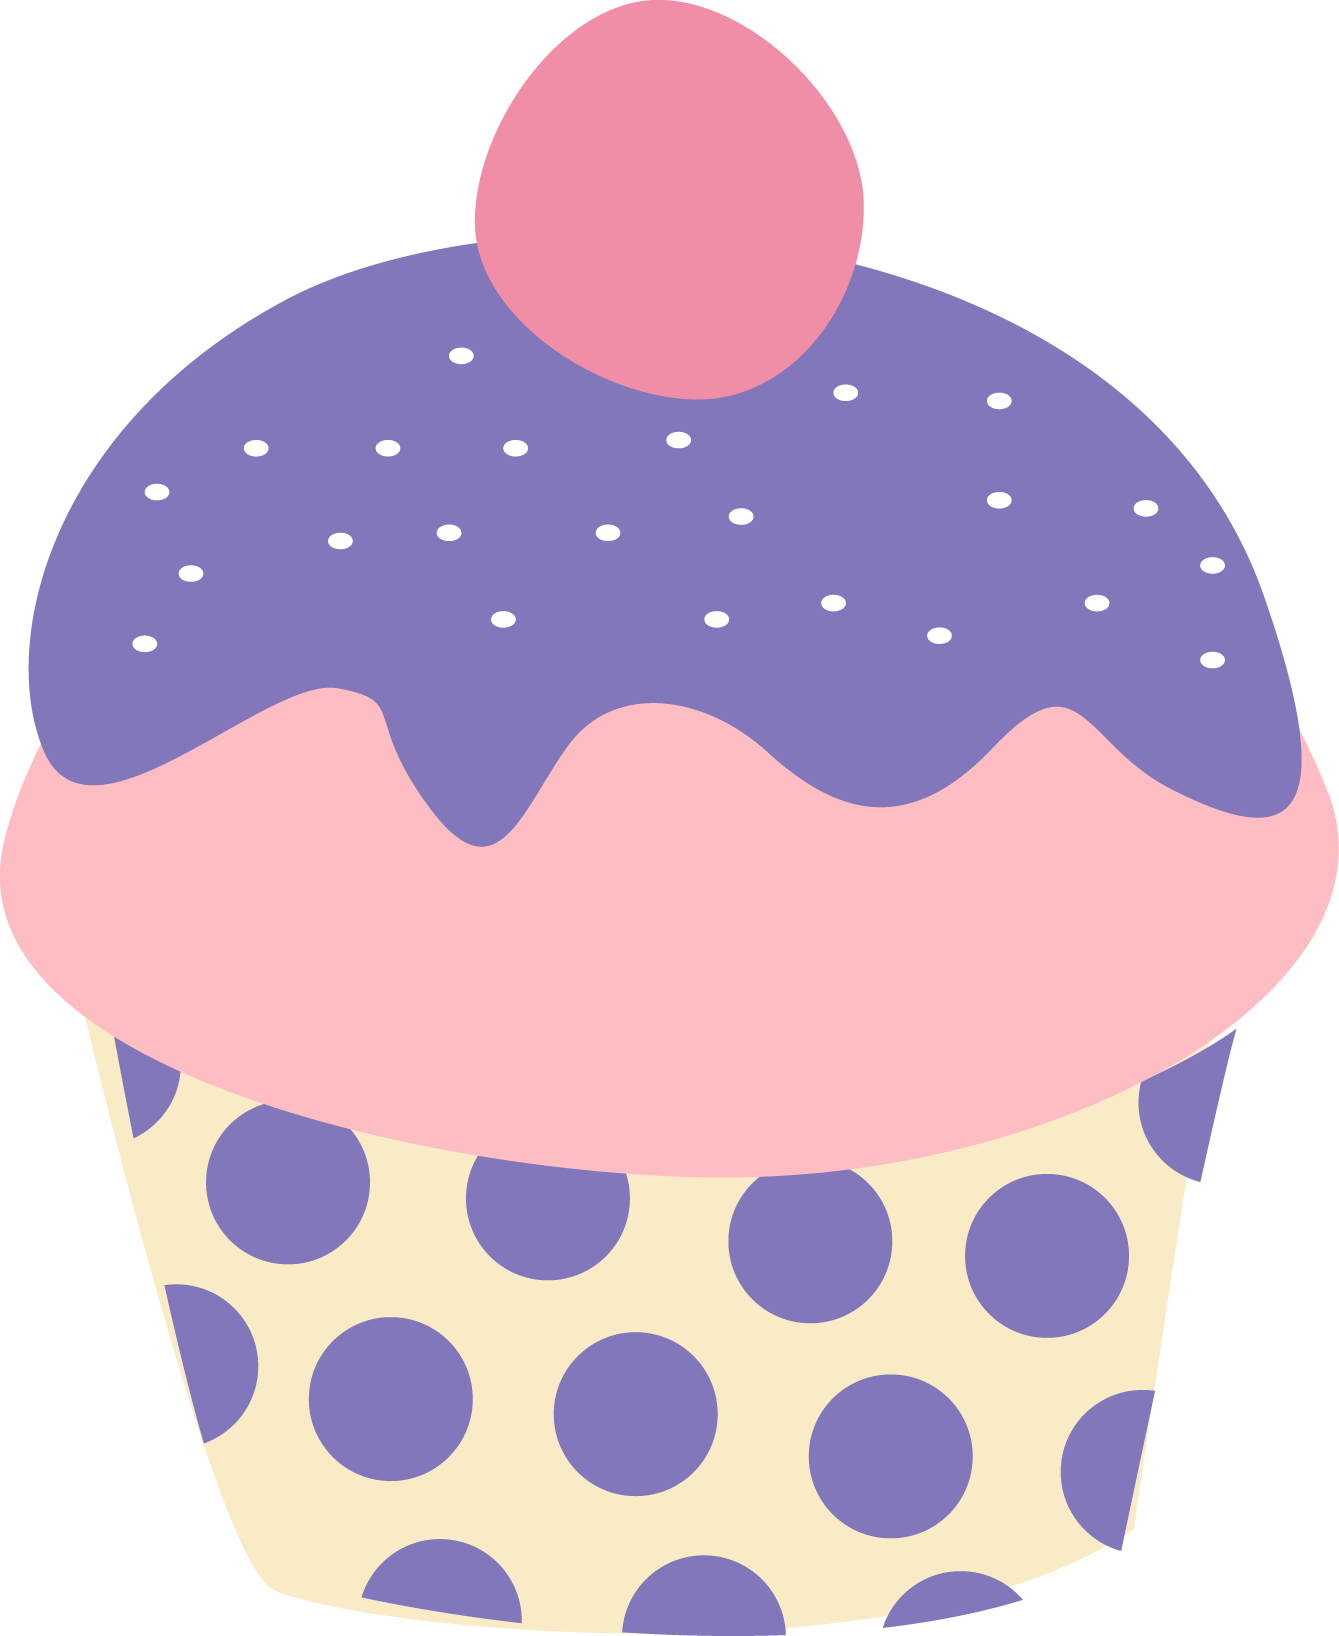 Photo by danimfalcao minus. Fraction clipart cupcake